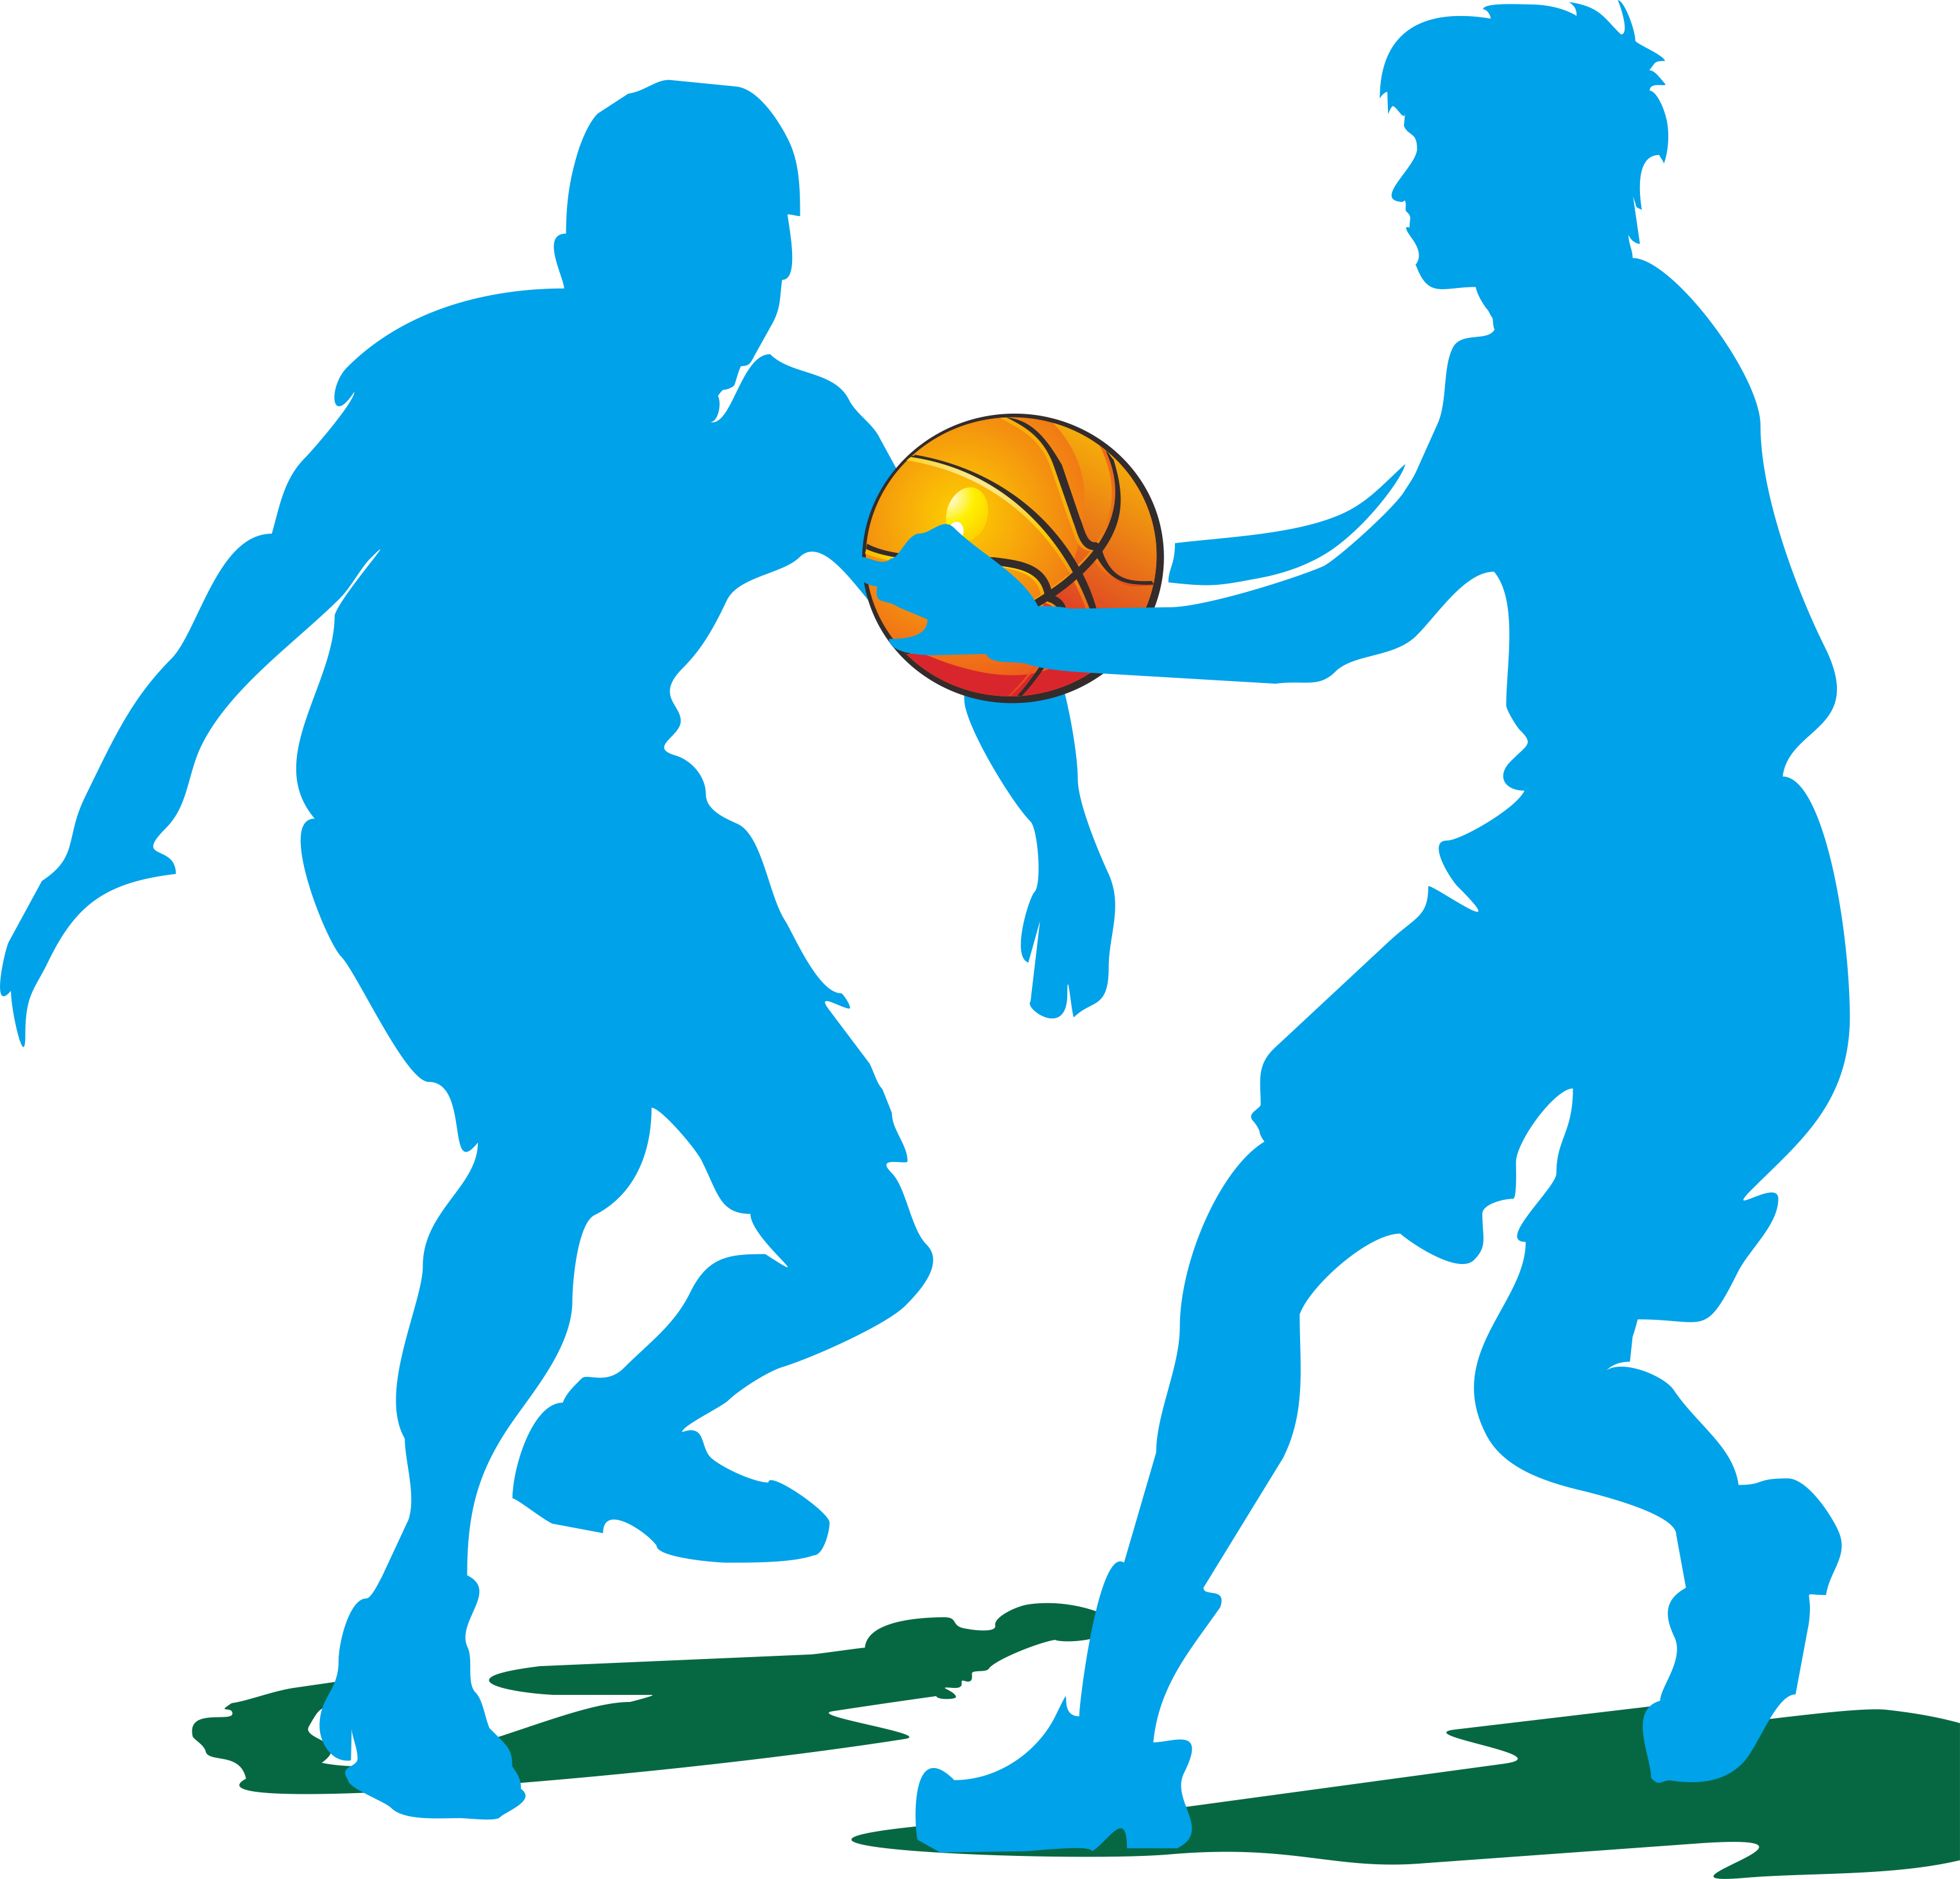 Basketball player clipart png banner transparent stock Basketball Silhouette Clip Art at GetDrawings.com | Free for ... banner transparent stock